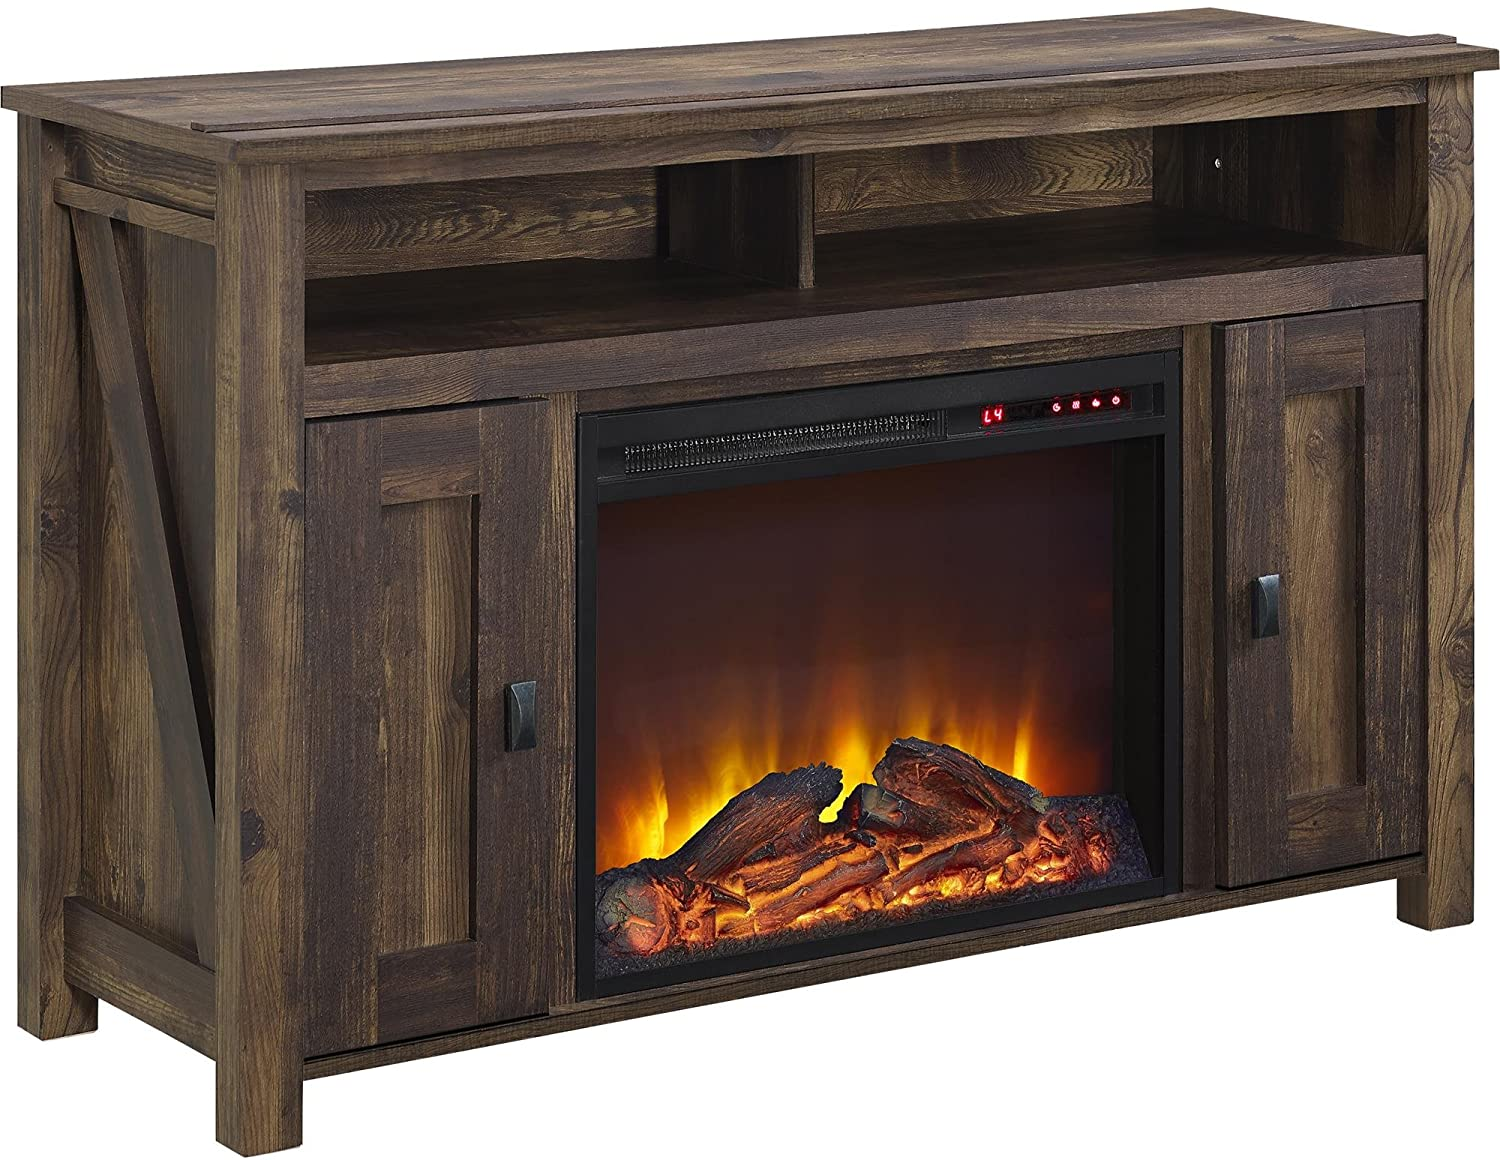 Ameriwood Home Farmington Electric Fireplace & TV Console